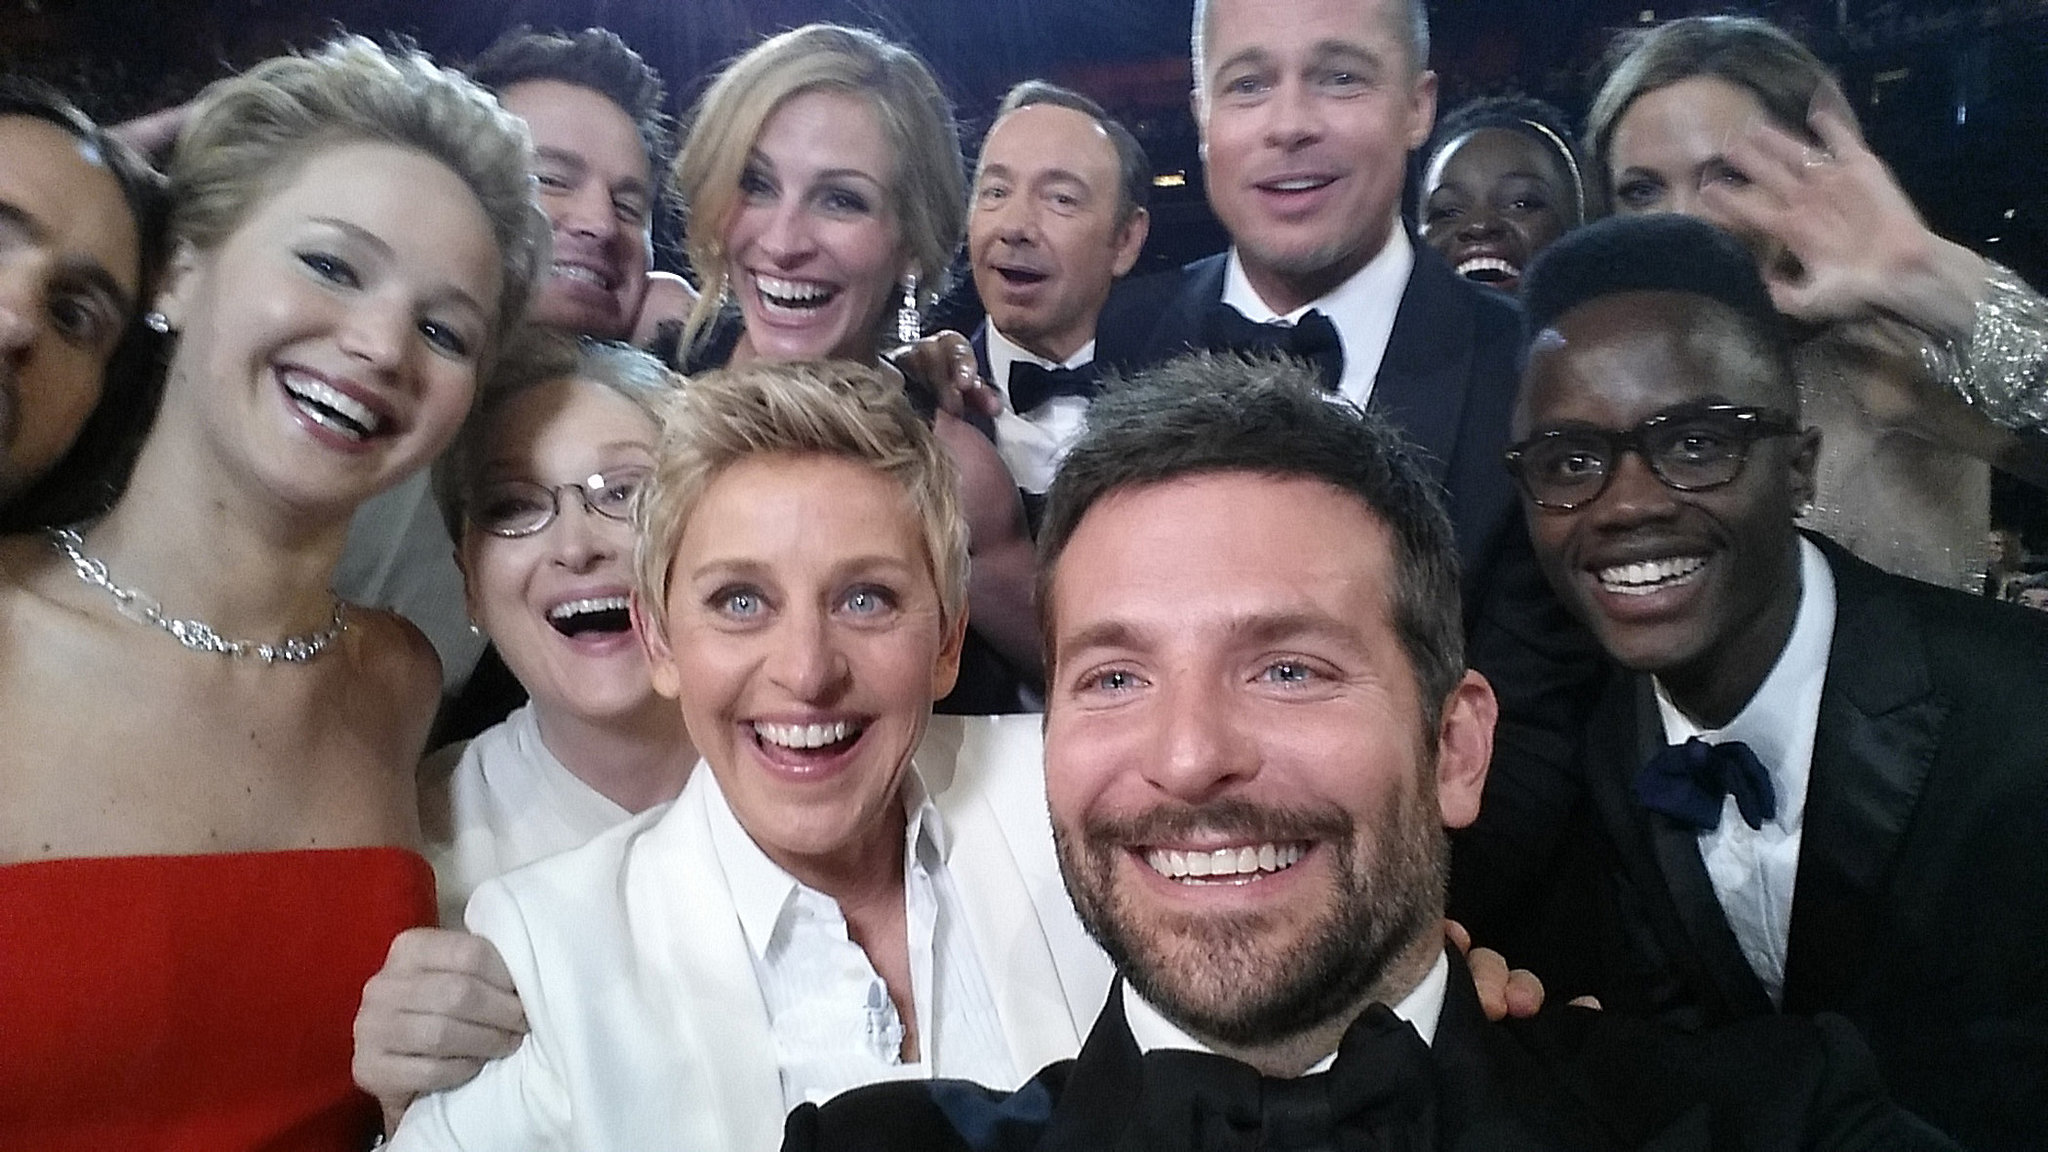 Here's that famous Oscars selfie that